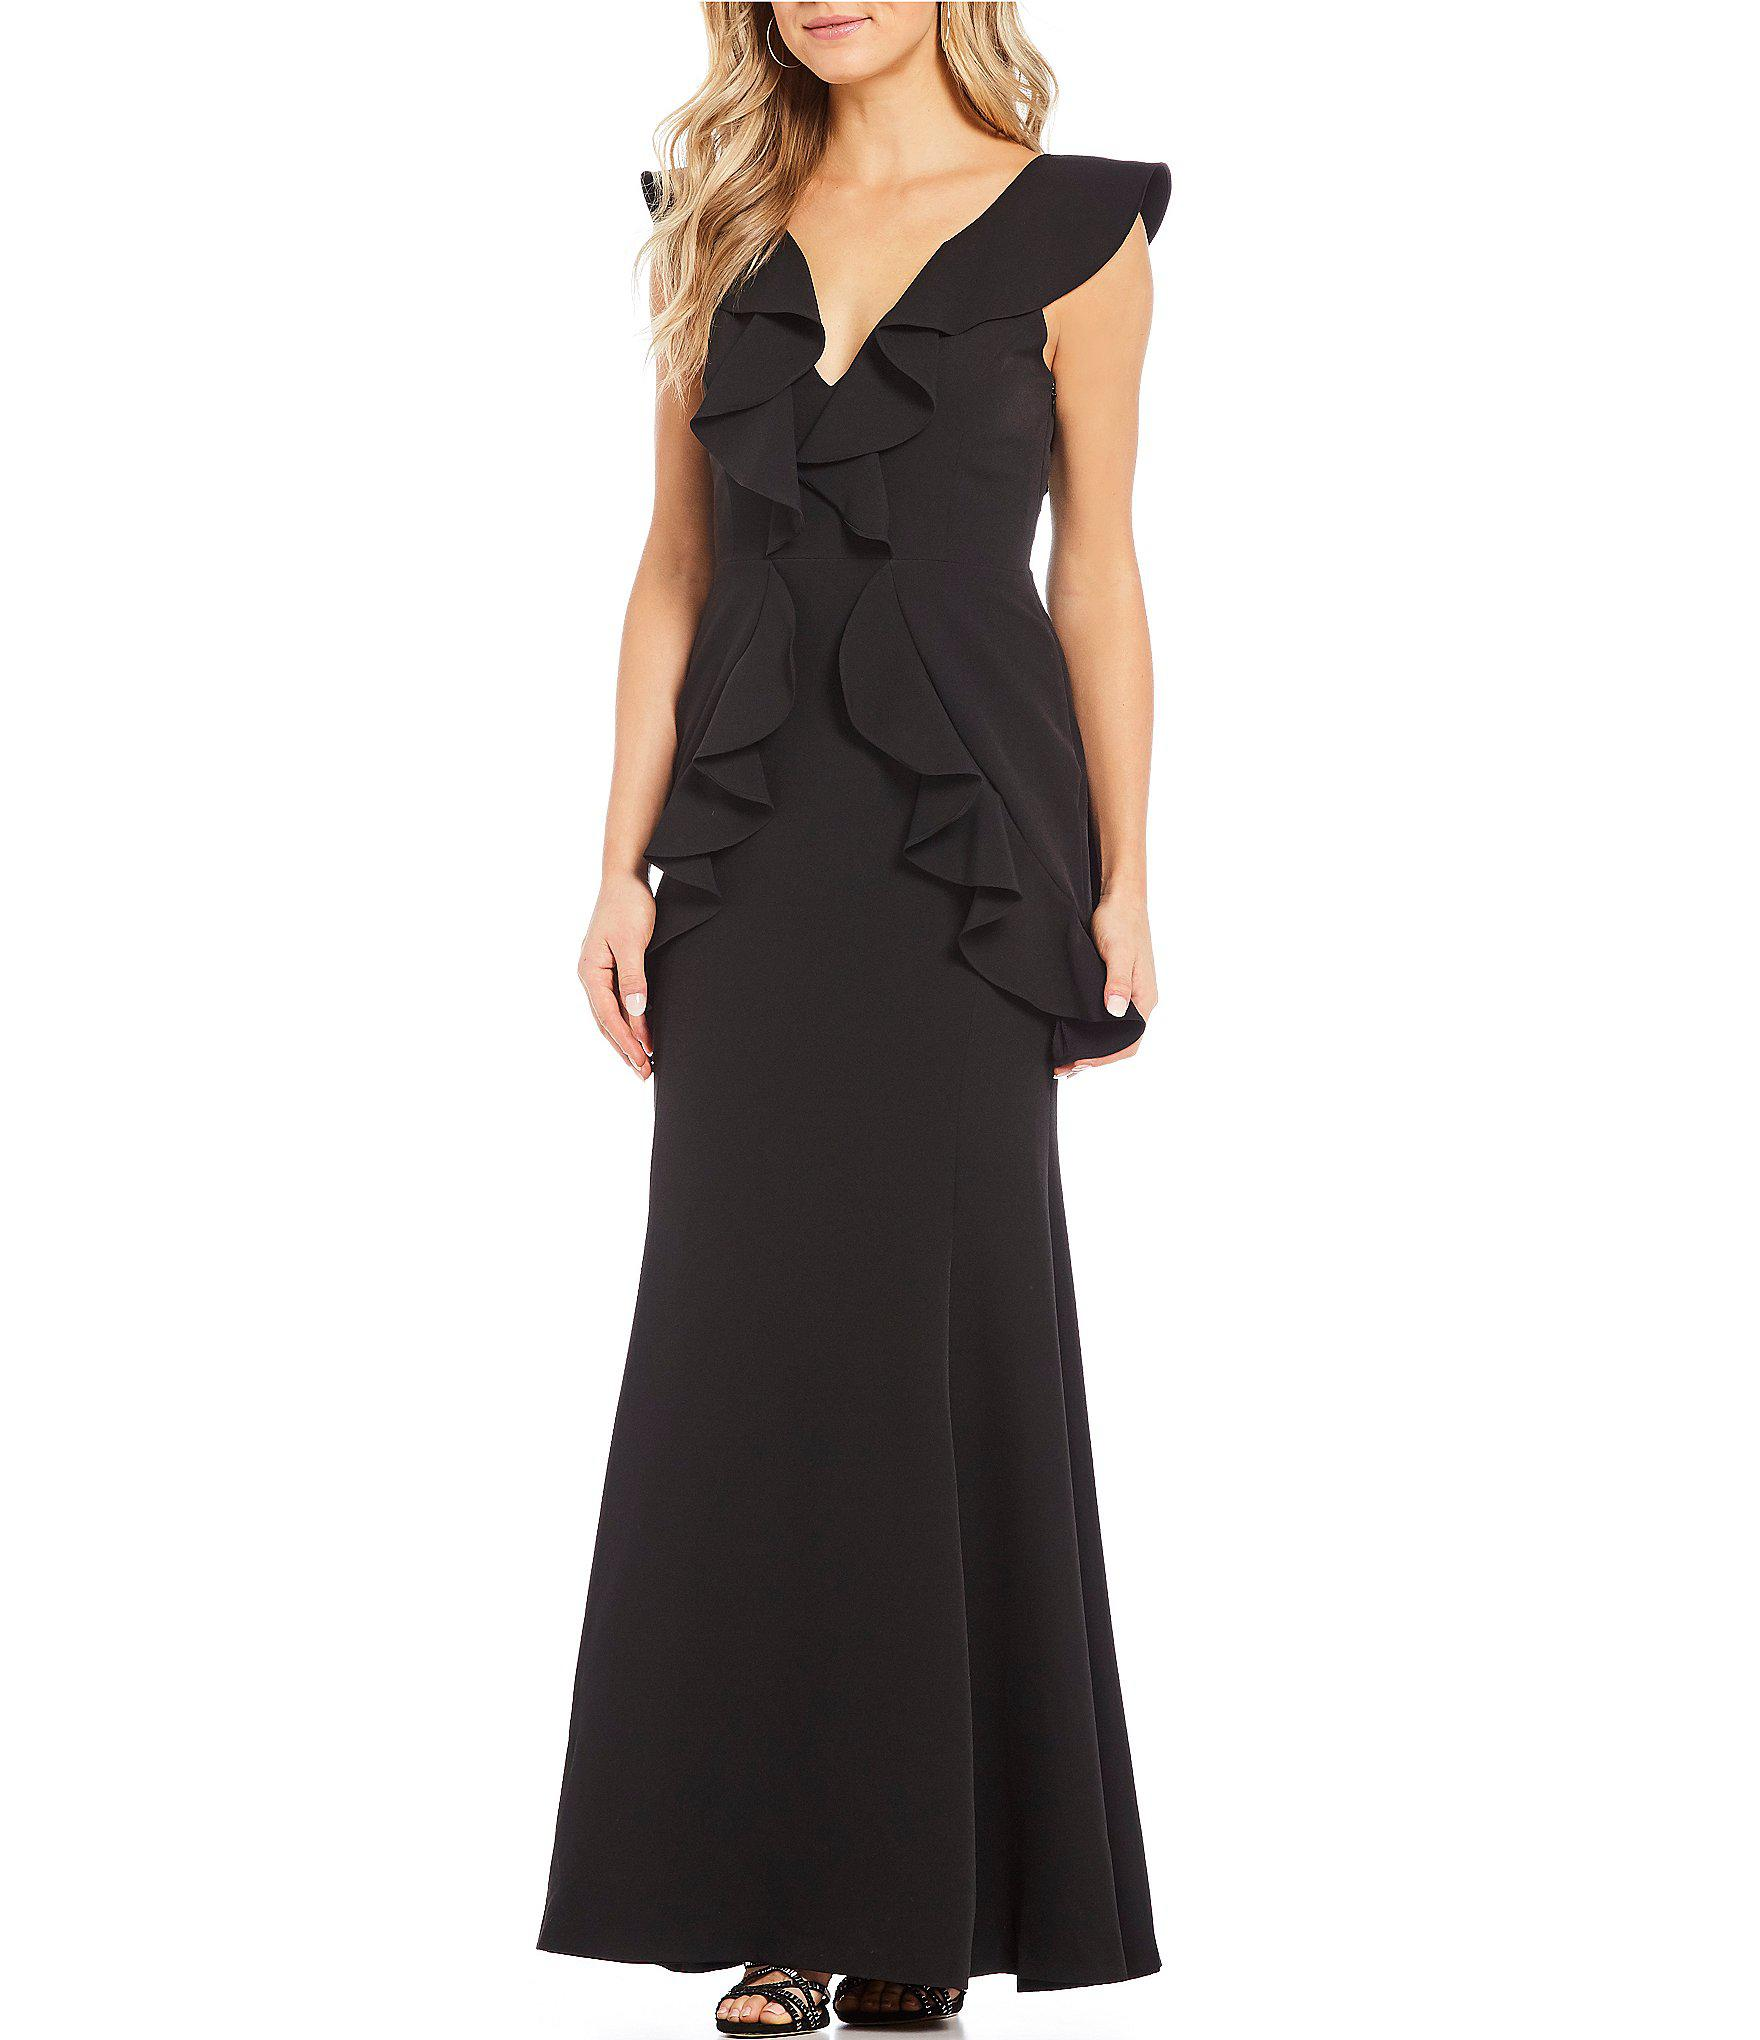 95a6b37cbc Gianni Bini Dee Ruffle Statement Shoulder V-neck Gown in Black - Lyst